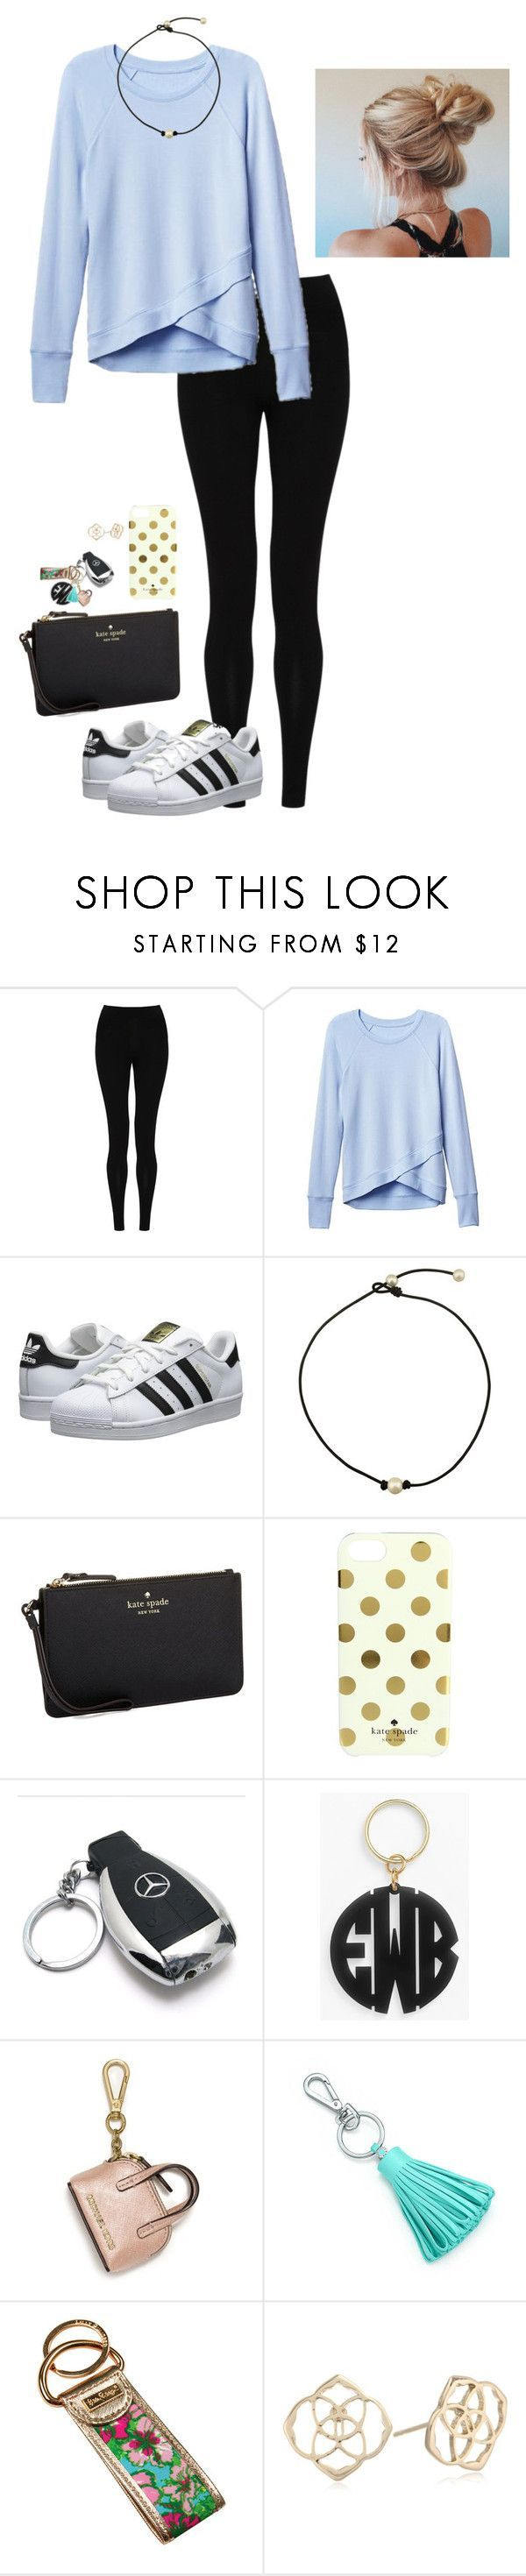 Hey! RTD!! by penguinfan911 ❤ liked on Polyvore featuring MS Collection, Athleta, adidas Originals, Kate Spade, Mercedes-Benz, Moon and Lola, MICHAEL Michael Kors, Tiffany Co., Lilly Pulitzer and Kendra Scott